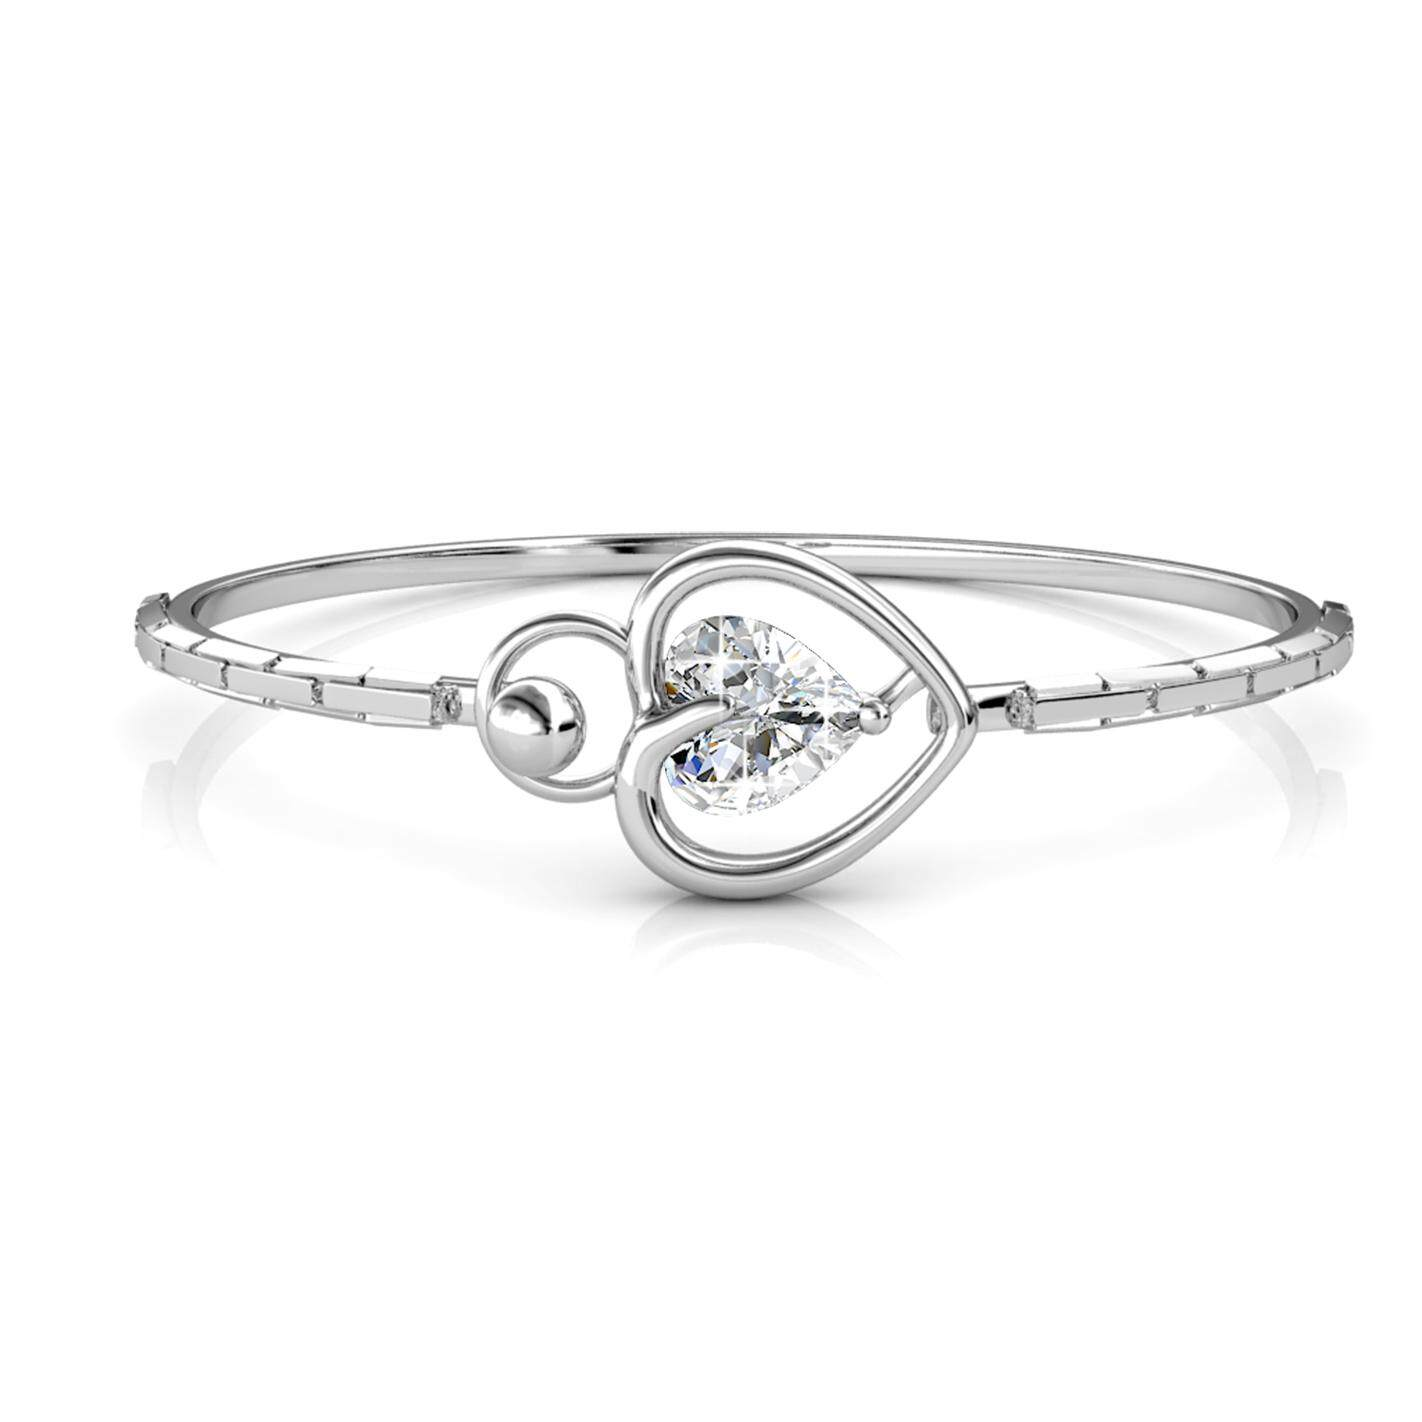 Her Jewellery Lovsie Bangle embellished with Crystals from Swarovski